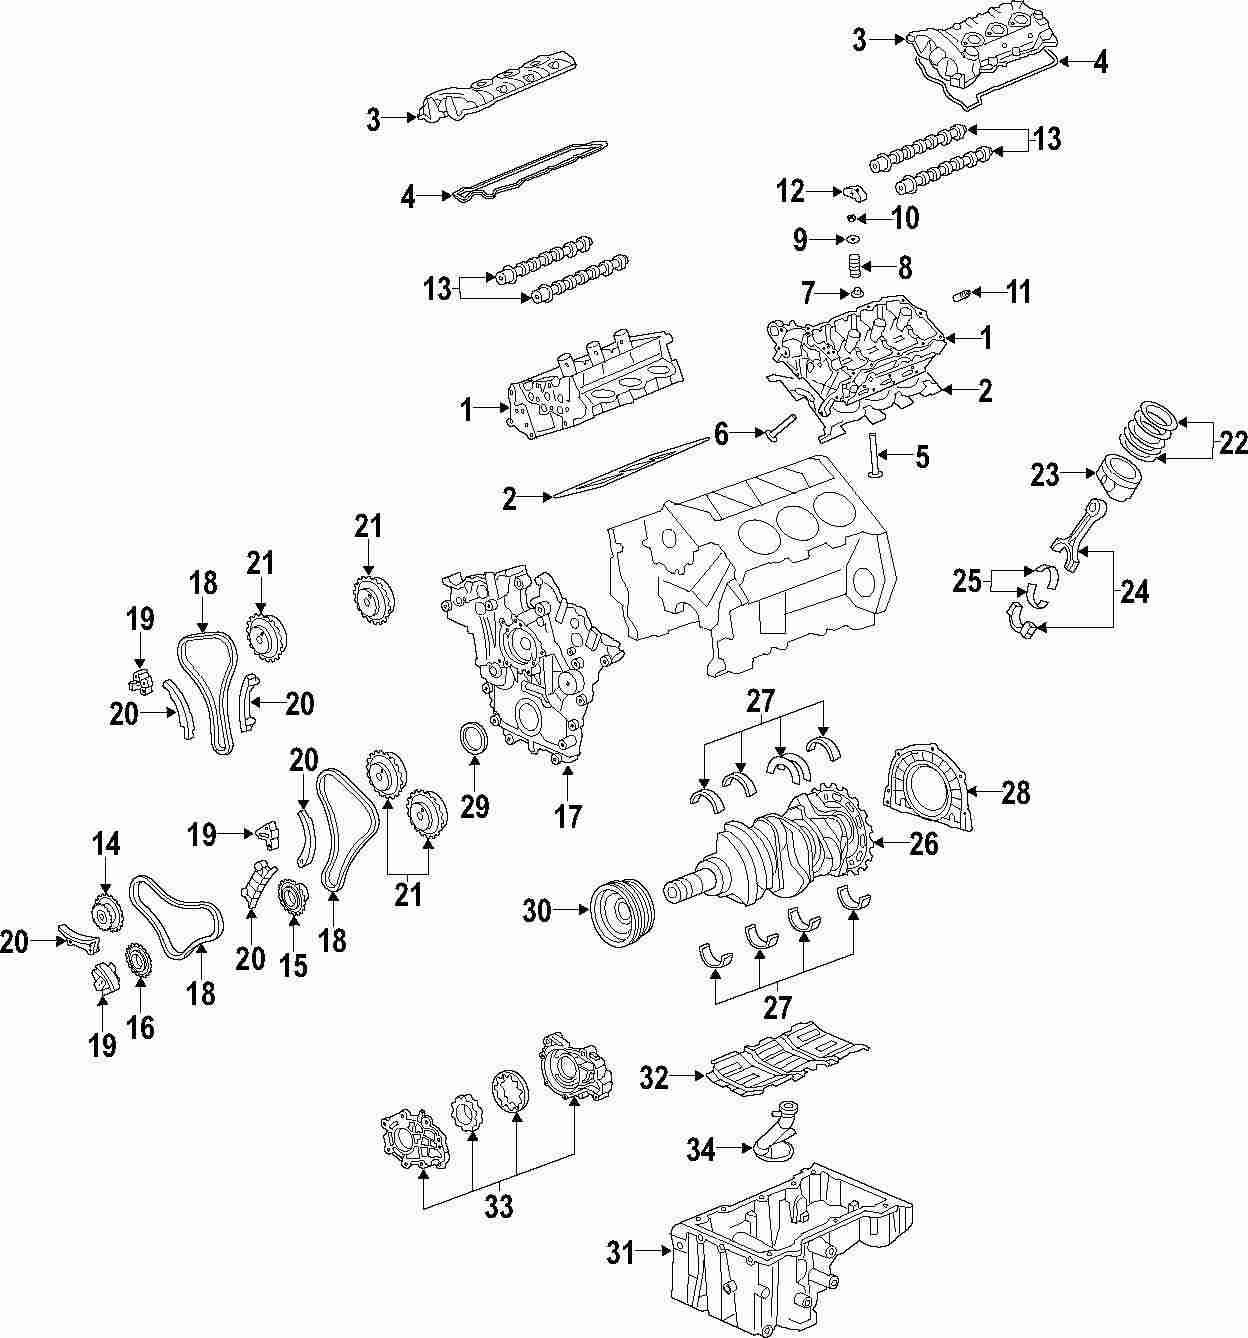 2011 Buick Enclave Engine Diagram Wiring Schematic 2019 Genuine Asm 12654375 Weir Parts Rh Weirparts Com